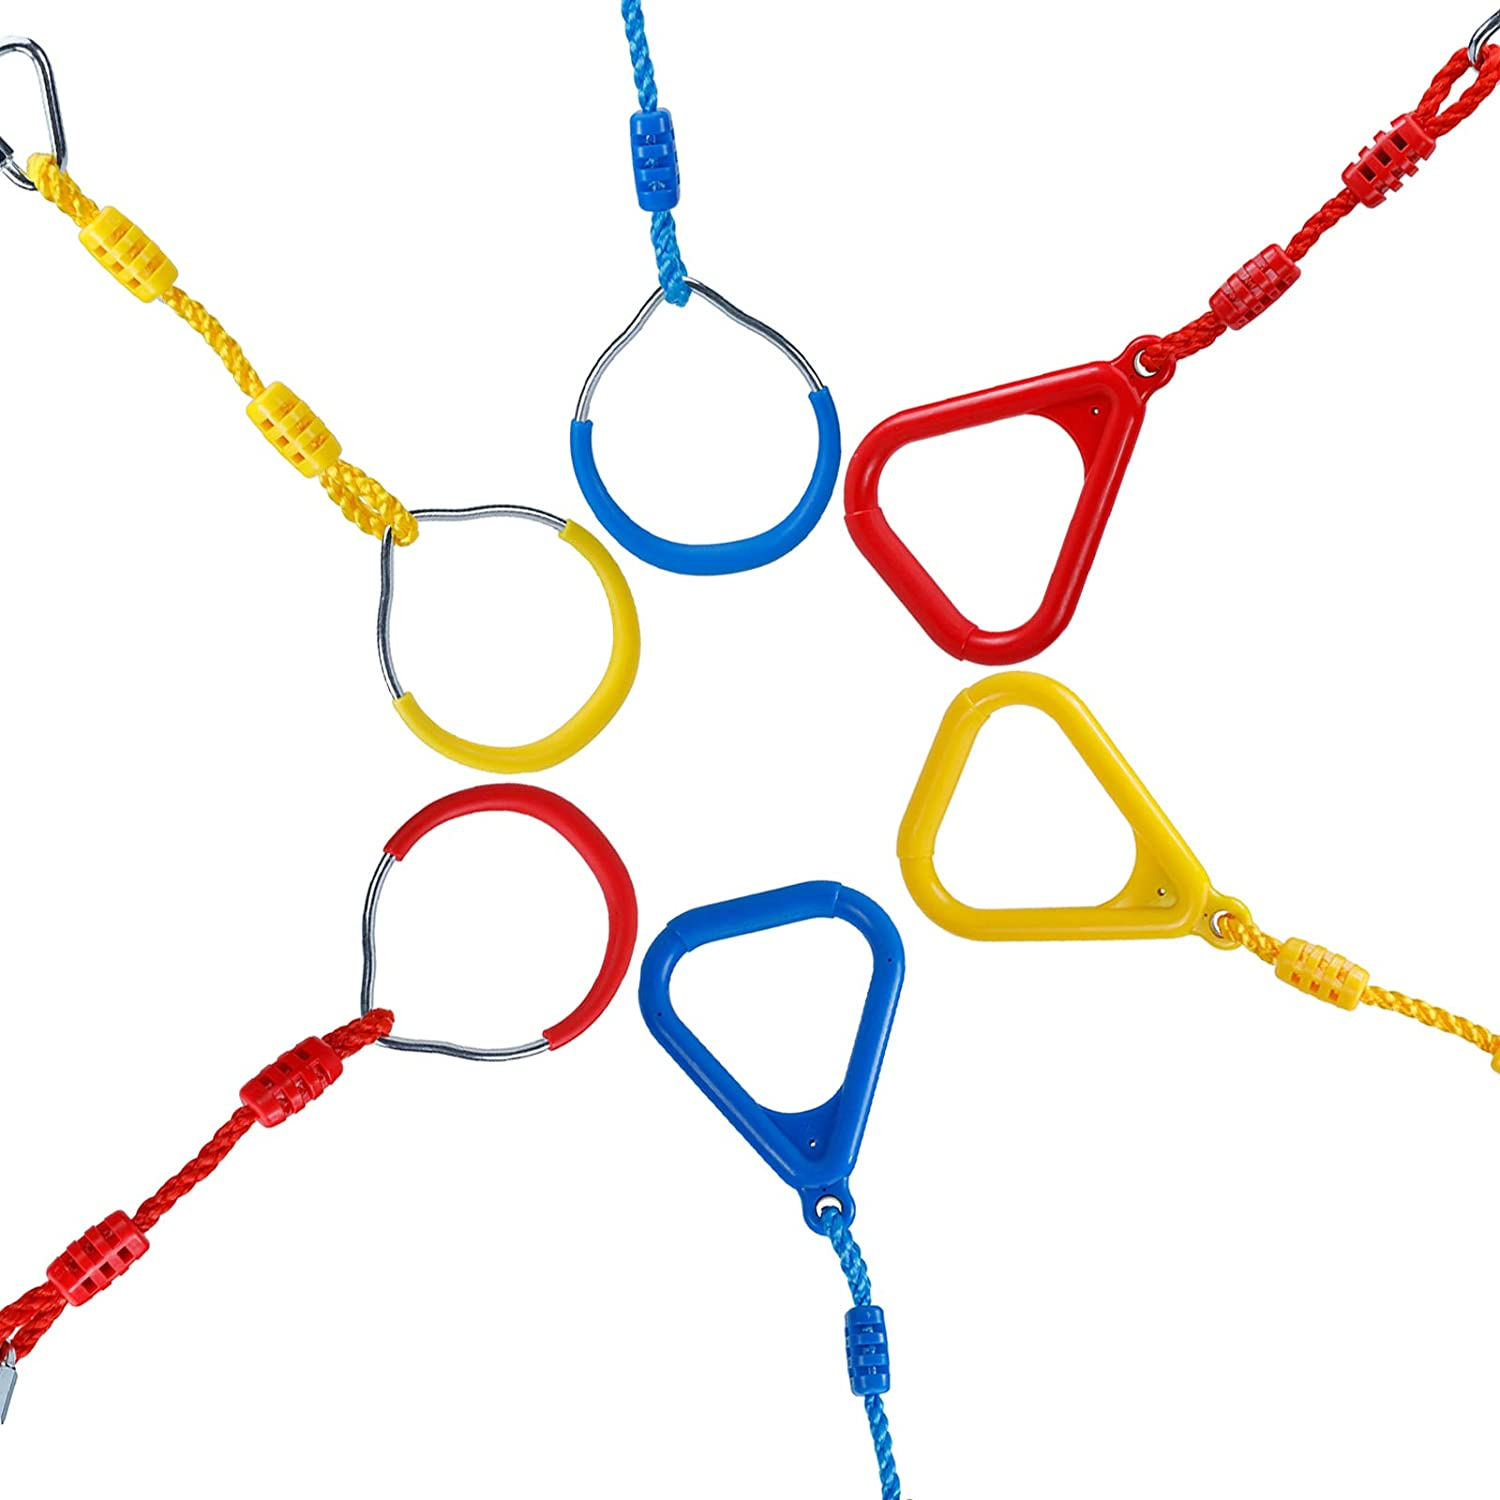 6 Obstacles XMSound Ninja Line Accessories 3 Circular and 3 Triangular Colorful Gym Ring Attachments for Obstacle Course